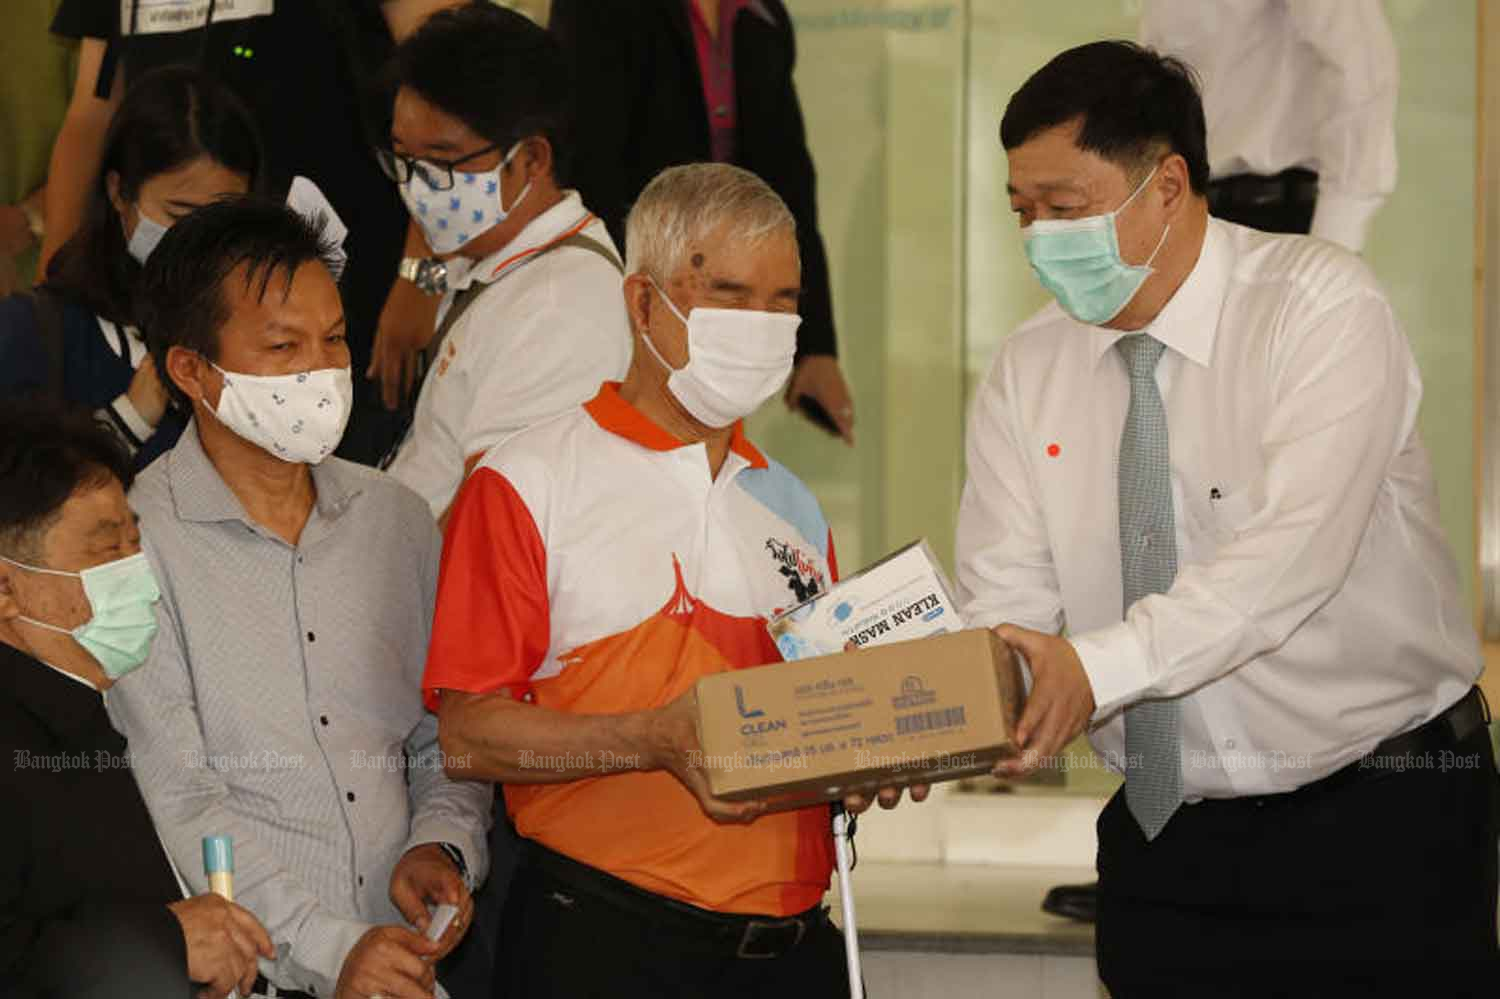 Representatives of Disabilities Thailand submit their written request for special financial assistance for people with disabilities during the Covid-19 crisis to Prasong Poontaneat, right, permanent secretary for finance, at the Finance Ministry in Bangkok on Friday. (Photo: Pornprom Satrabhaya)